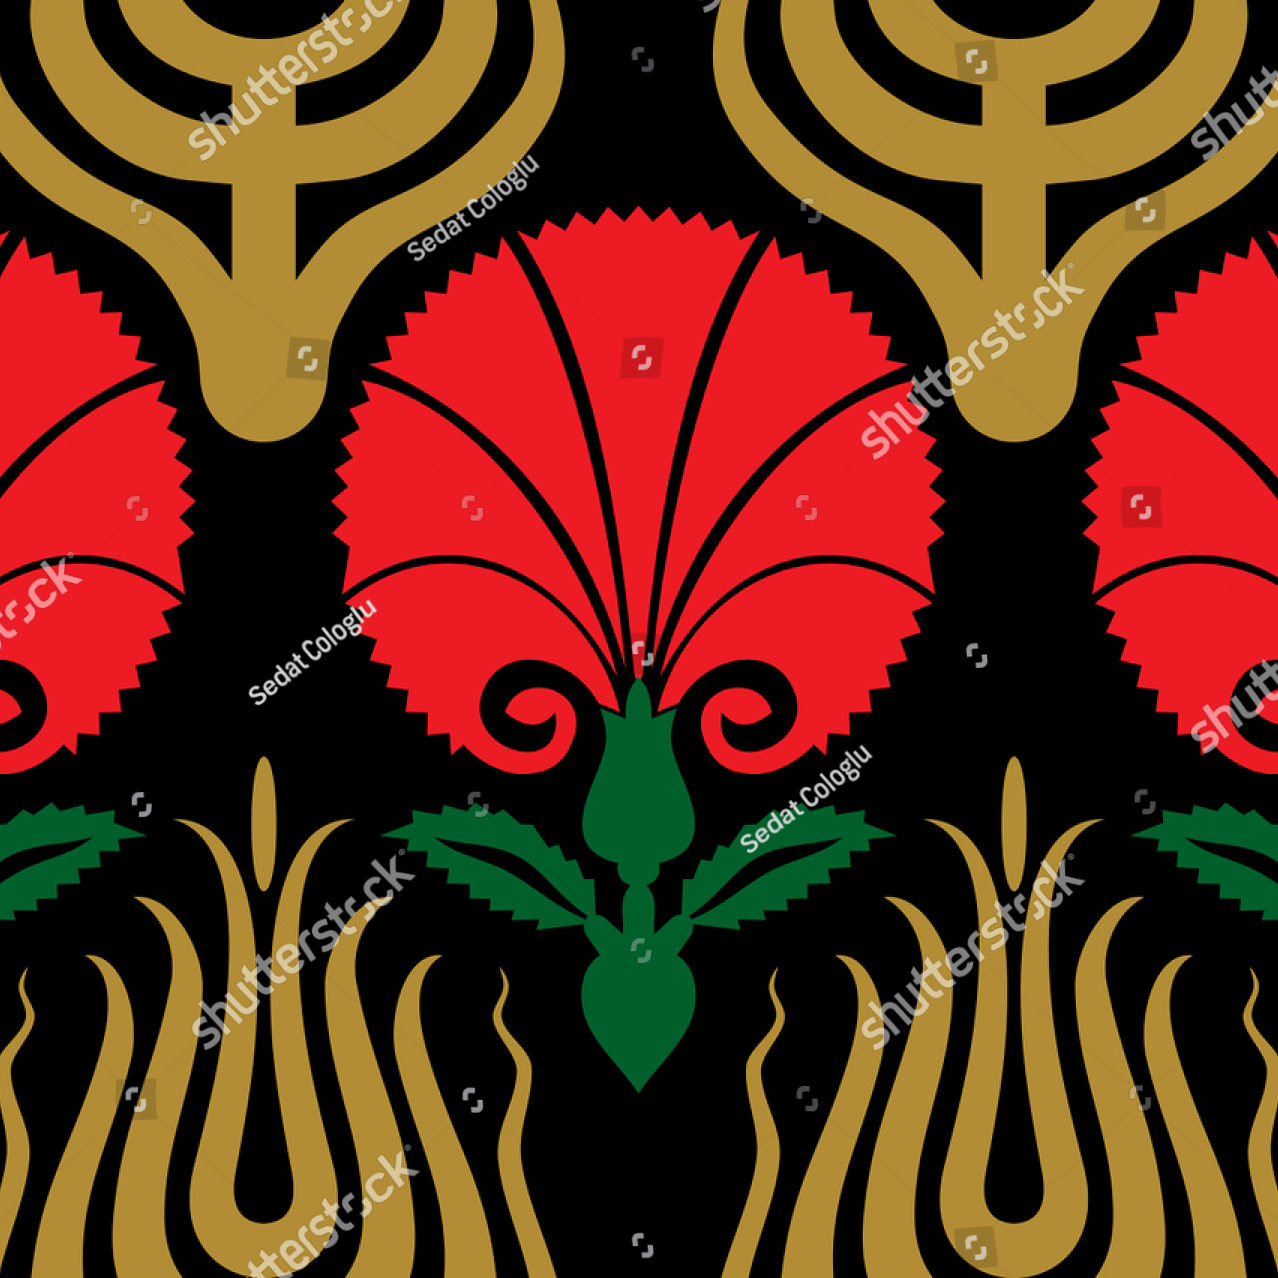 stock-vector-ottoman-carnation-and-tulip-figure-textile-design-it-can-be-used-as-wallpaper-gift-or-wrapping-1350022487